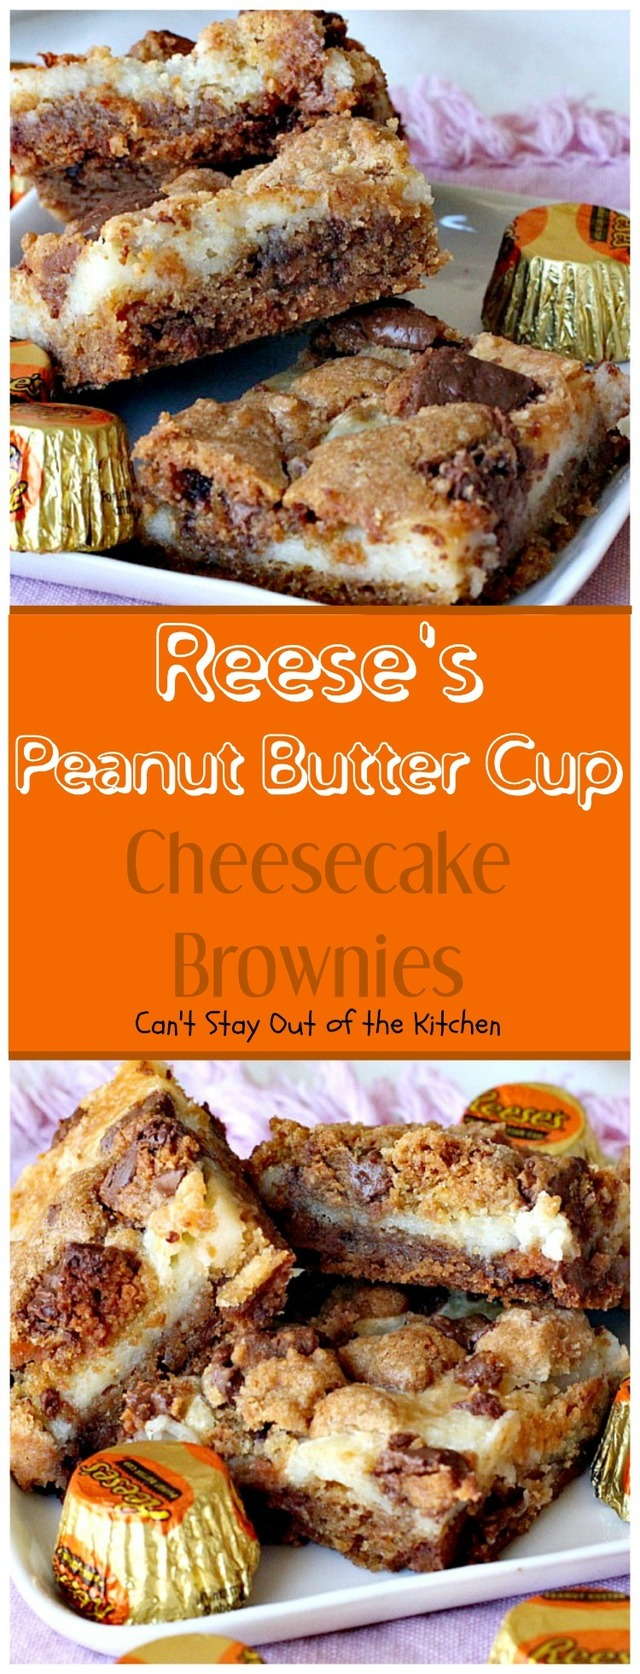 Reese's Peanut Butter Cup Cheesecake Brownies